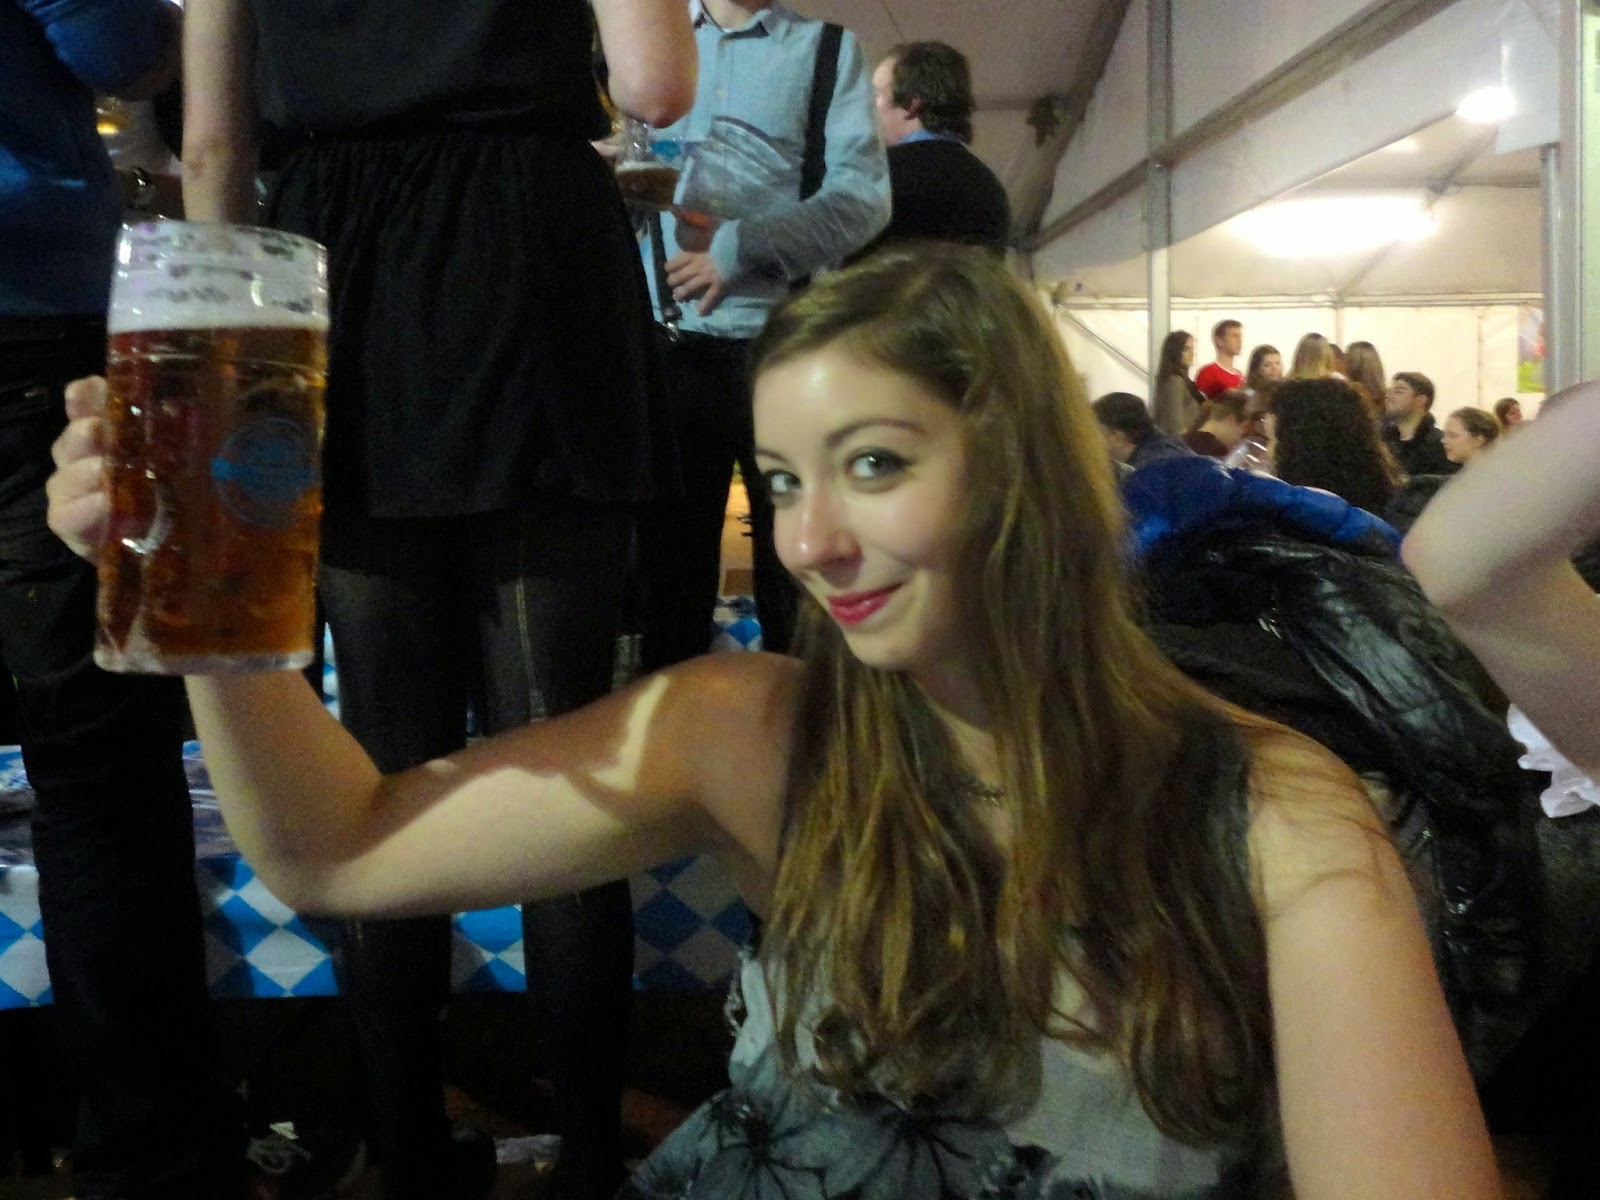 edinburgh oktoberfest 2pt beer stein cheers